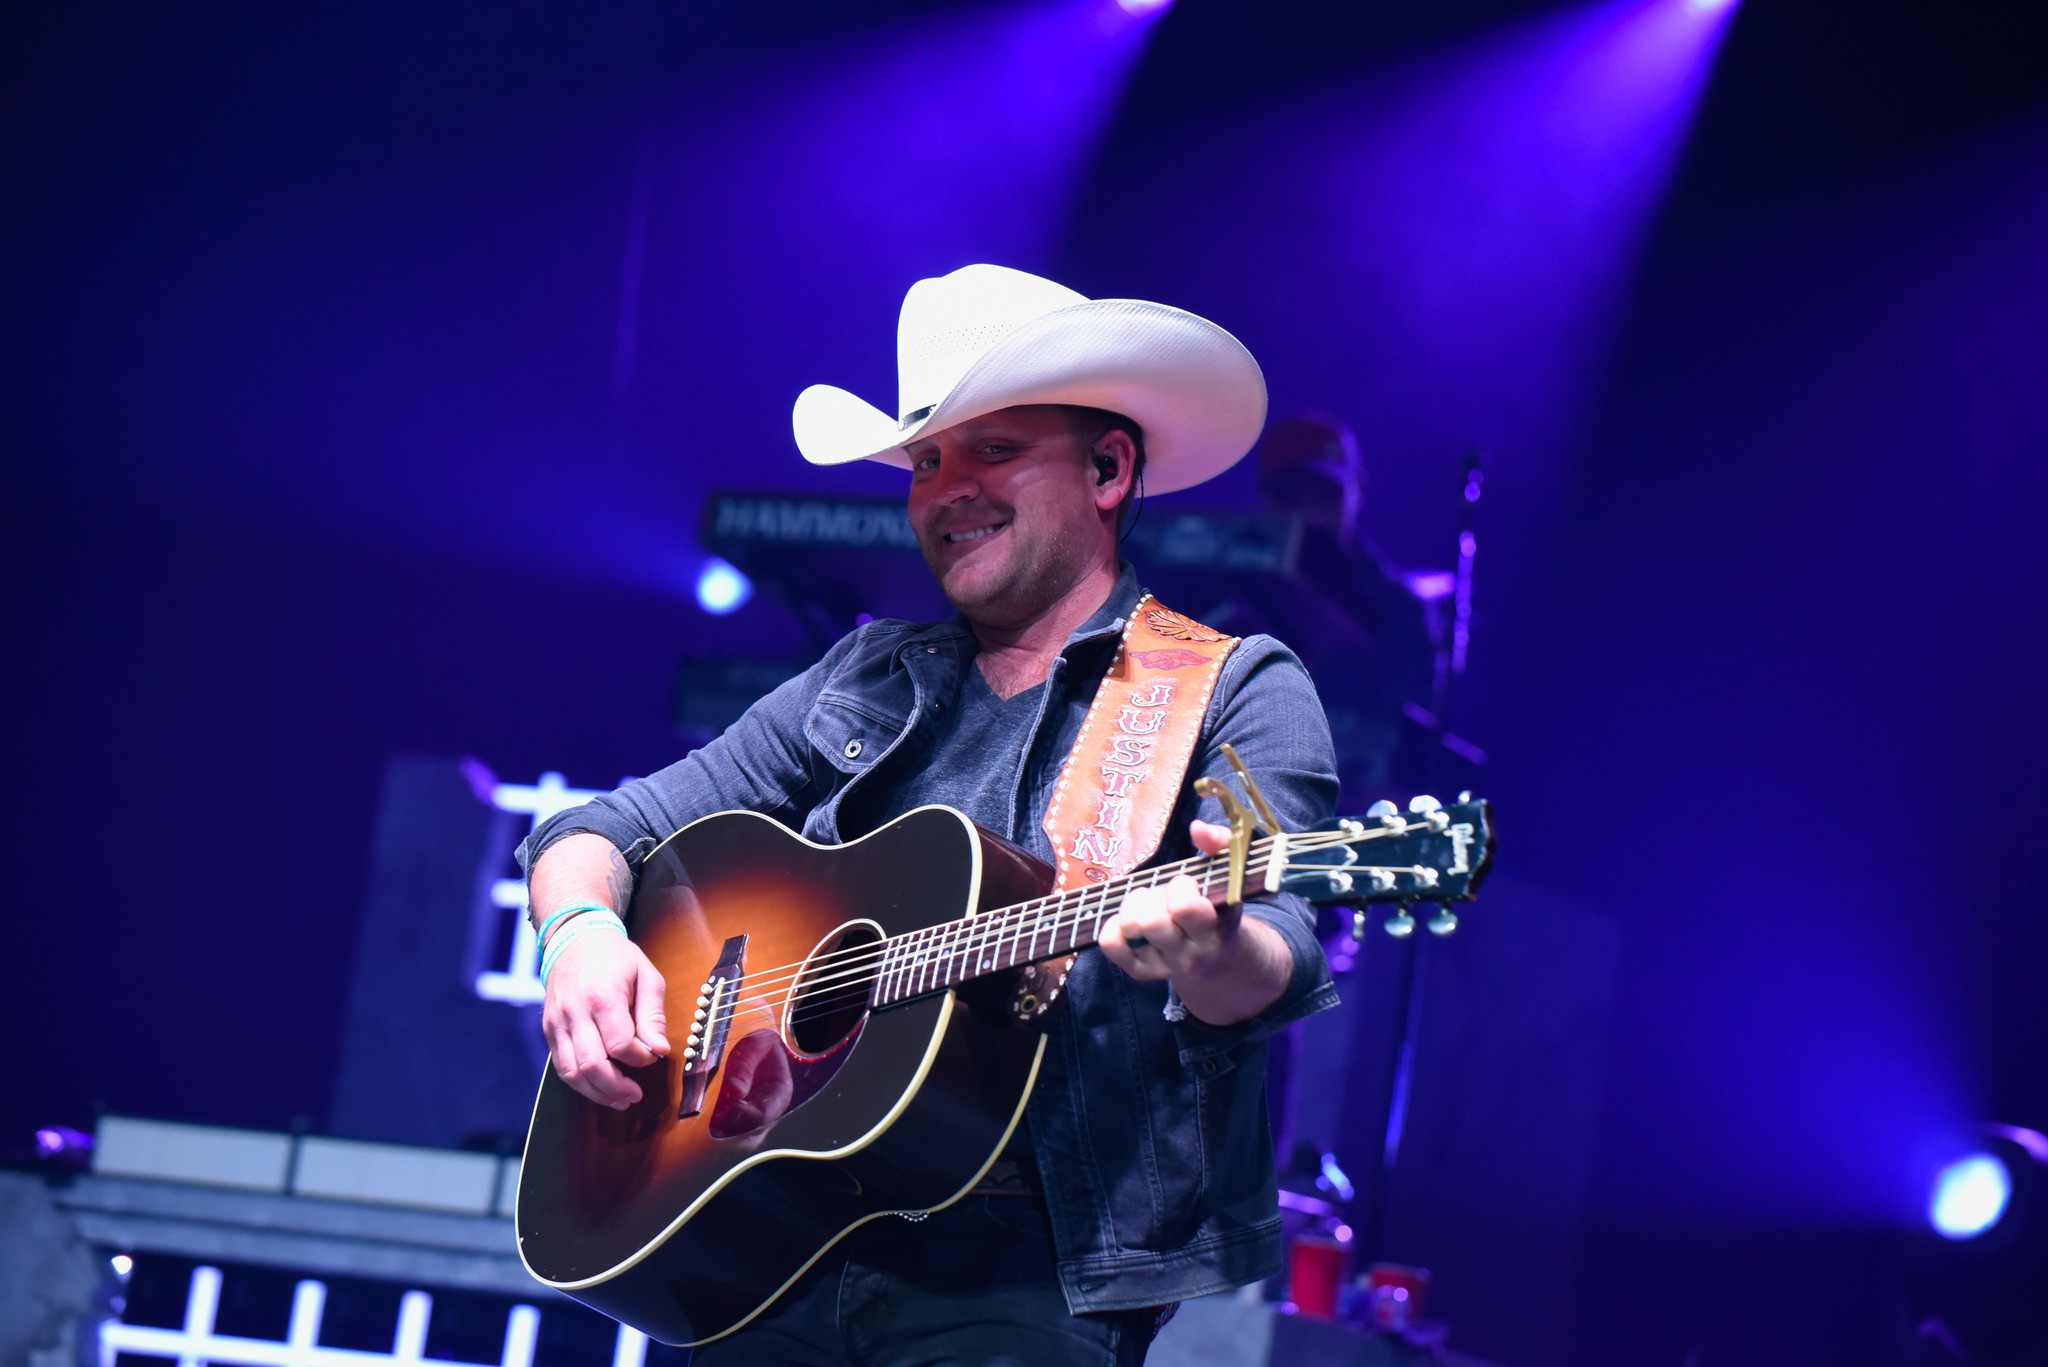 MSDCountryStrong concert featuring Justin Moore at FAU in